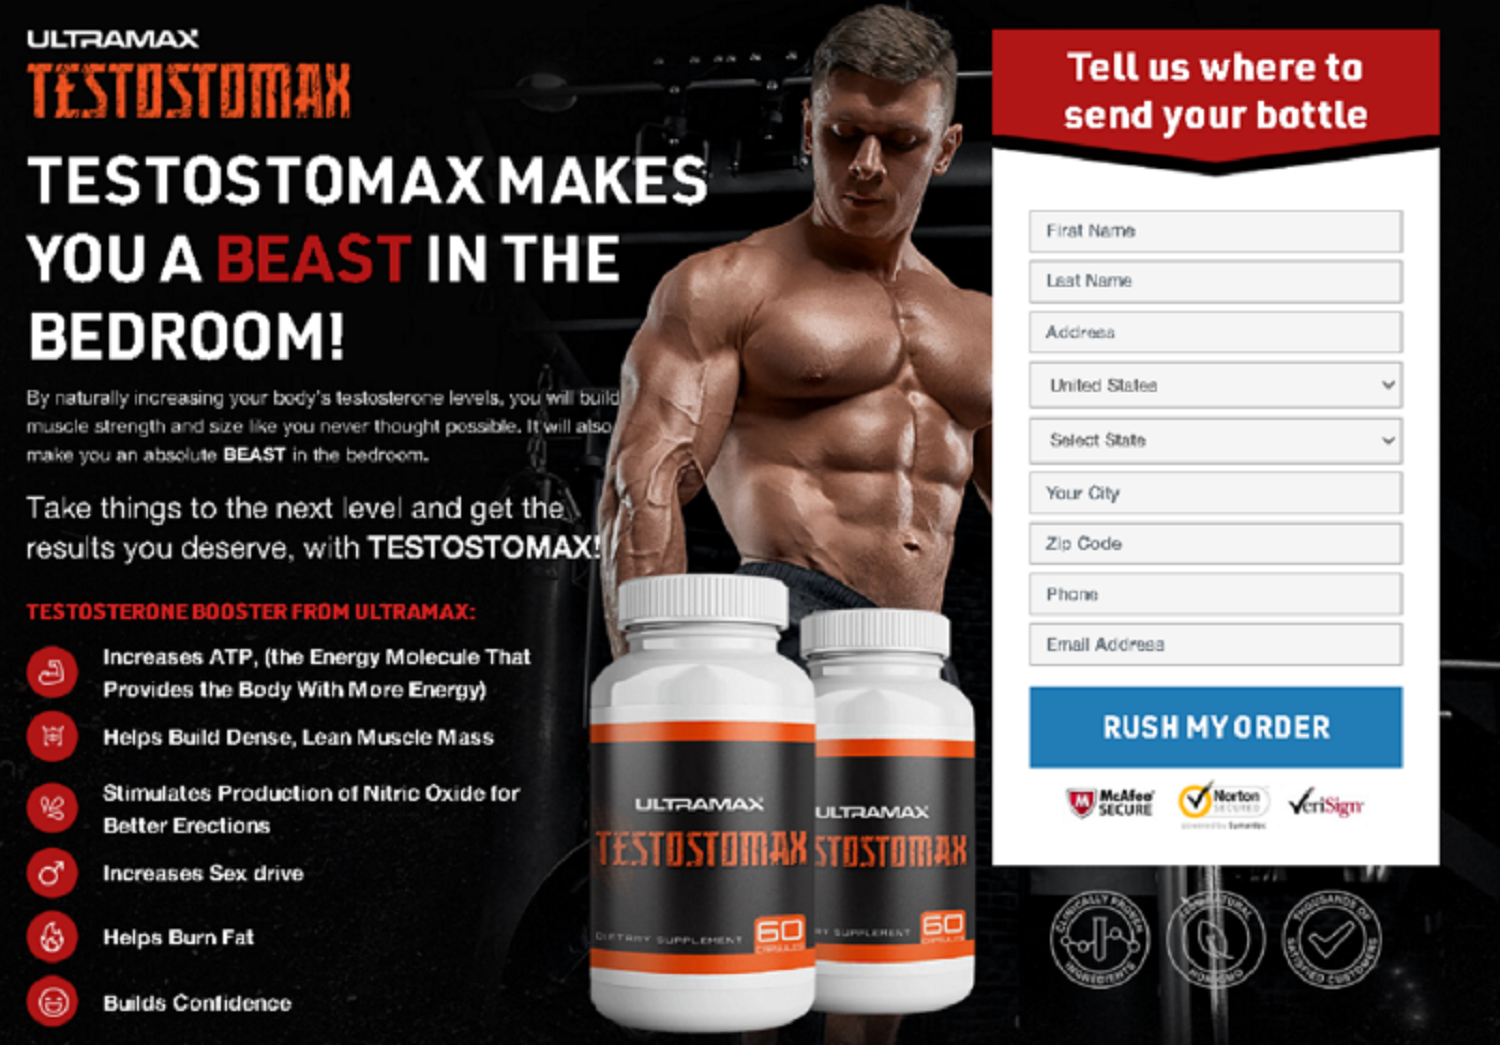 UltraMax TestoMax (Review) UltraMax TestoMax Male Enhancement is Scam Don't Buy - Hype.News: Fre